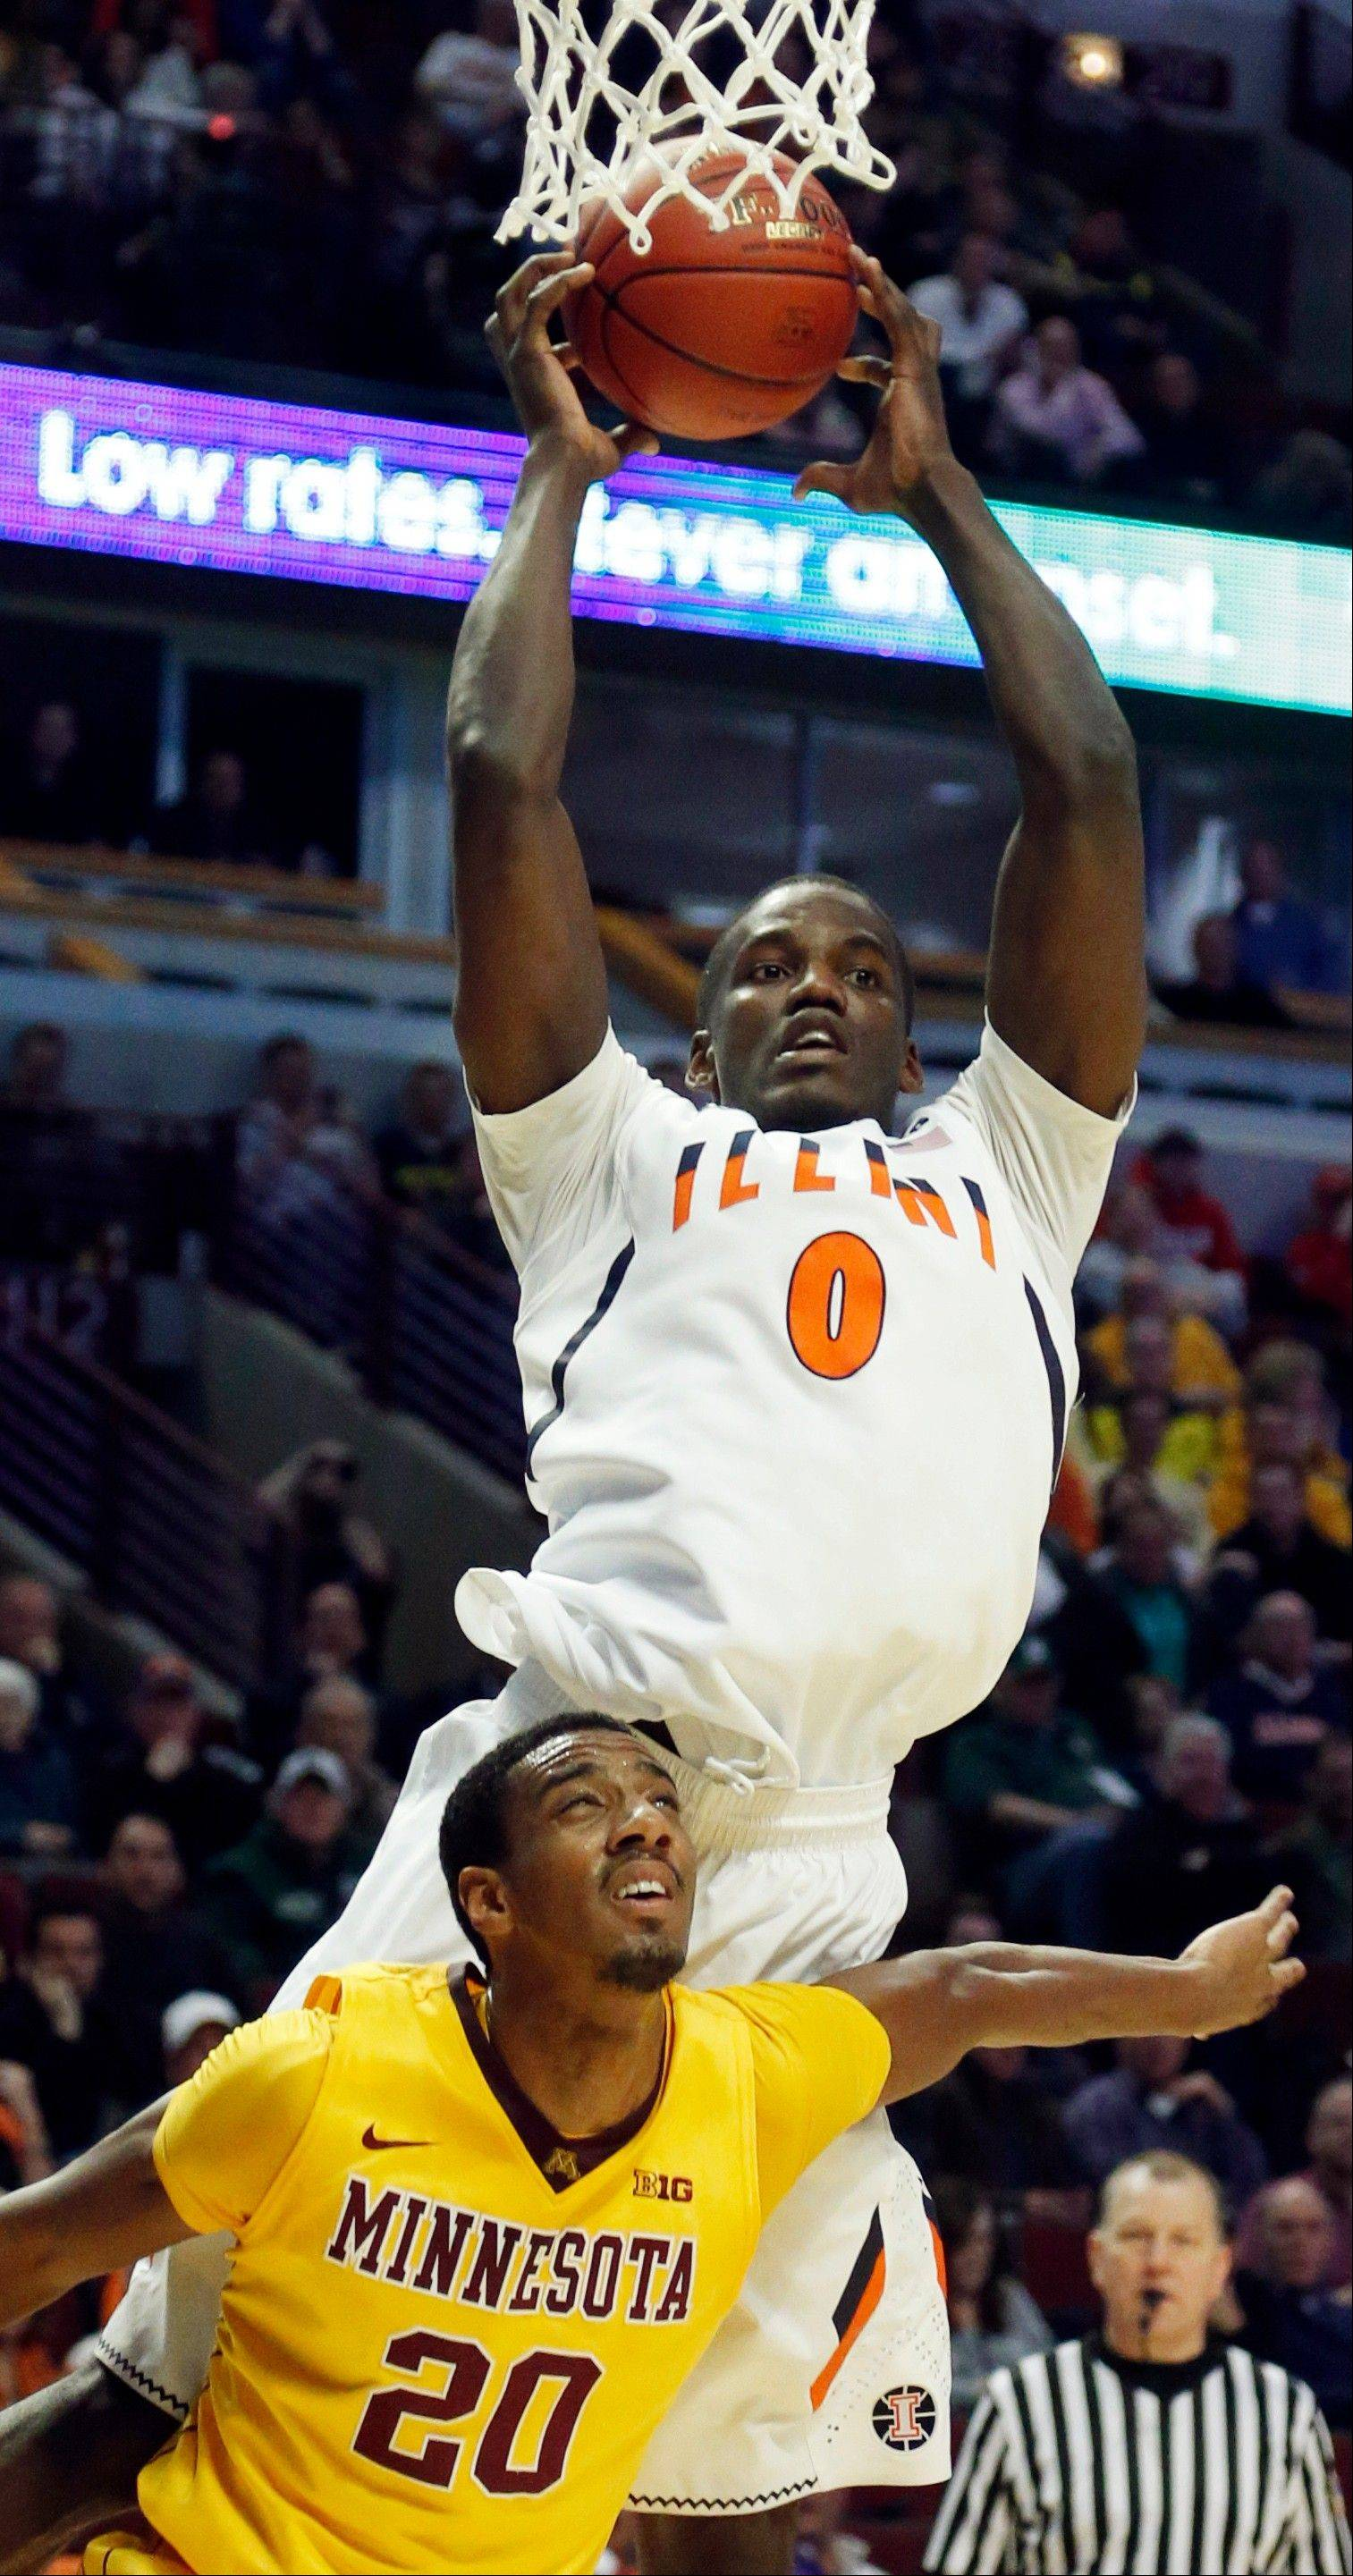 Illinois' Sam McLaurin rebounds over Minnesota's Austin Hollins (20) during the second half.